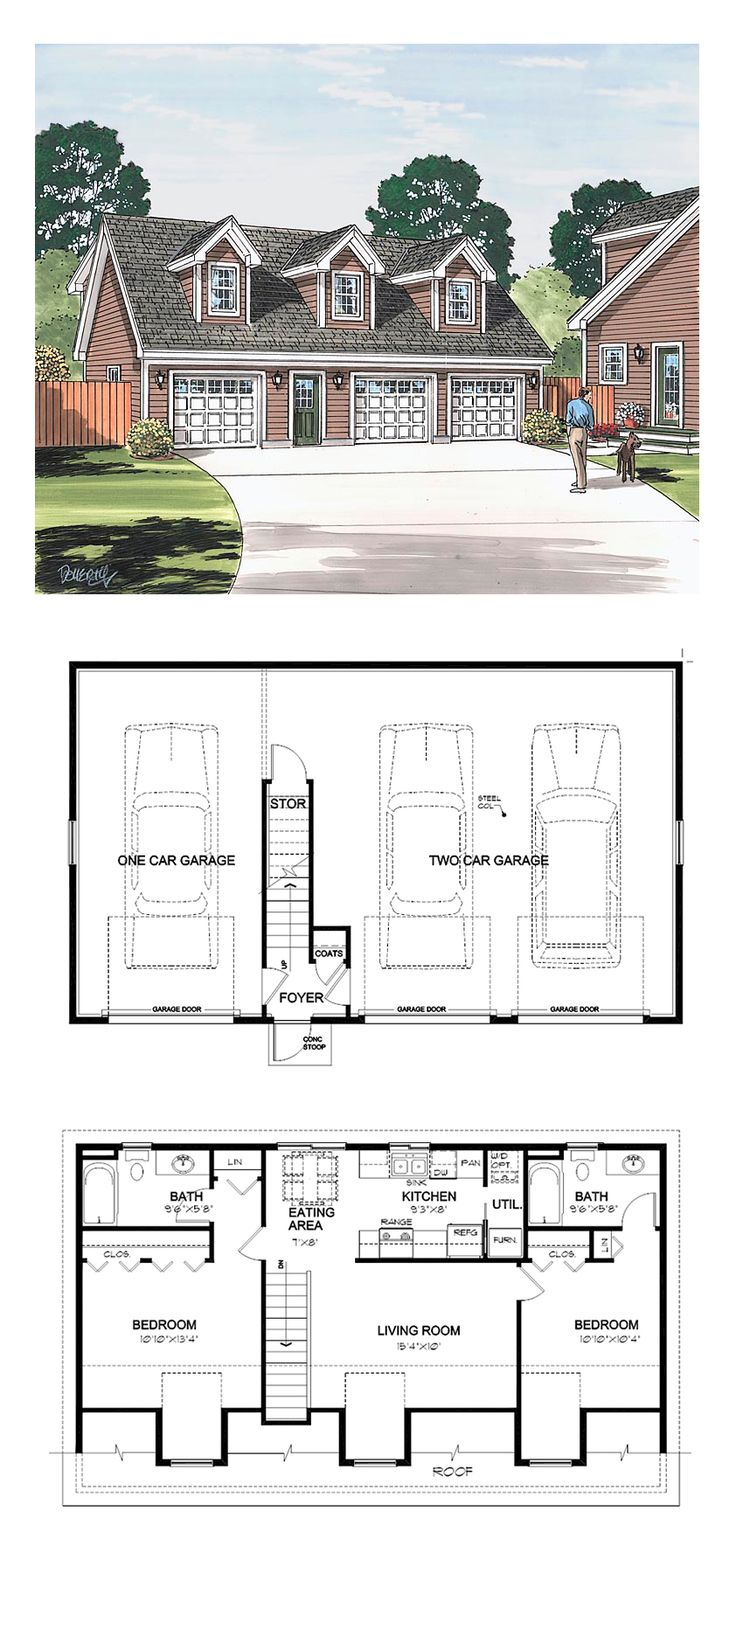 delightful 2 bedroom garage apartment plans #2: Garage Apartment Plan 30032 | Total Living Area: 887 sq. ft., 2